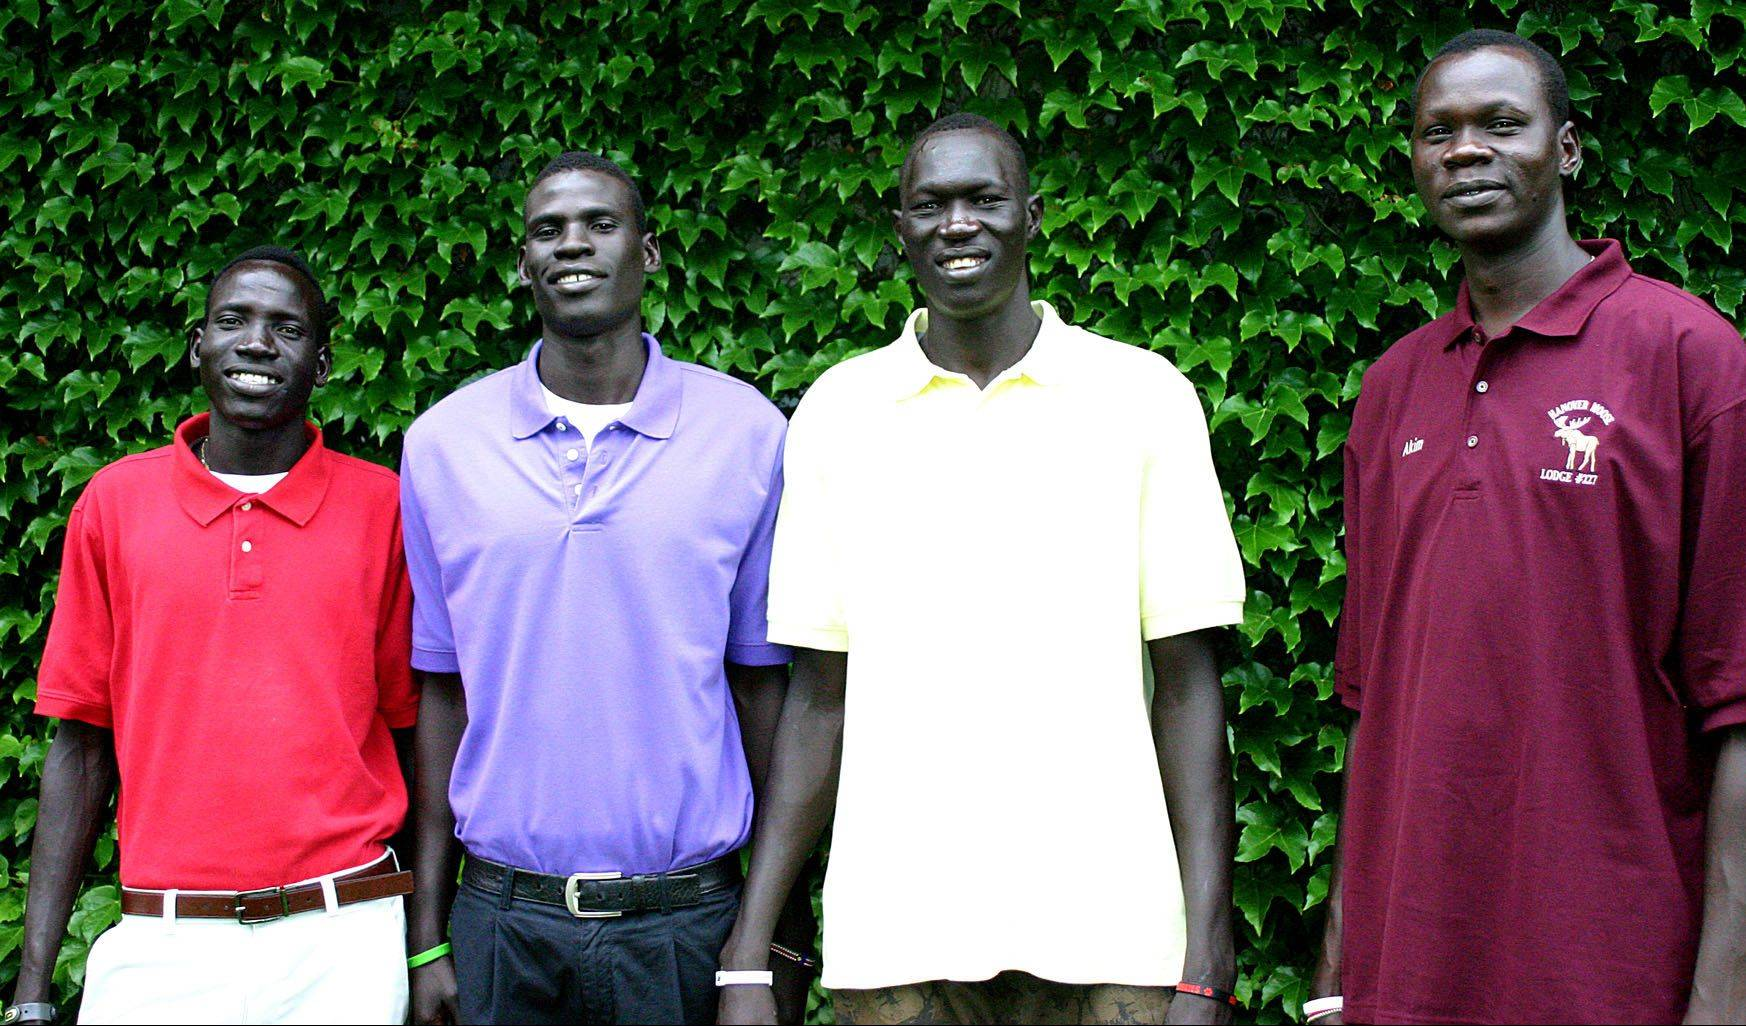 Wal Khat, from left, Mangisto Deng, Makur Puou and Akim Nyang are four Sudanese athletes at Mooseheart Child City and School. The latter three have been cleared to play basketball again after a judge granted a temporary restraining order. The IHSA had previously declared them ineligible.